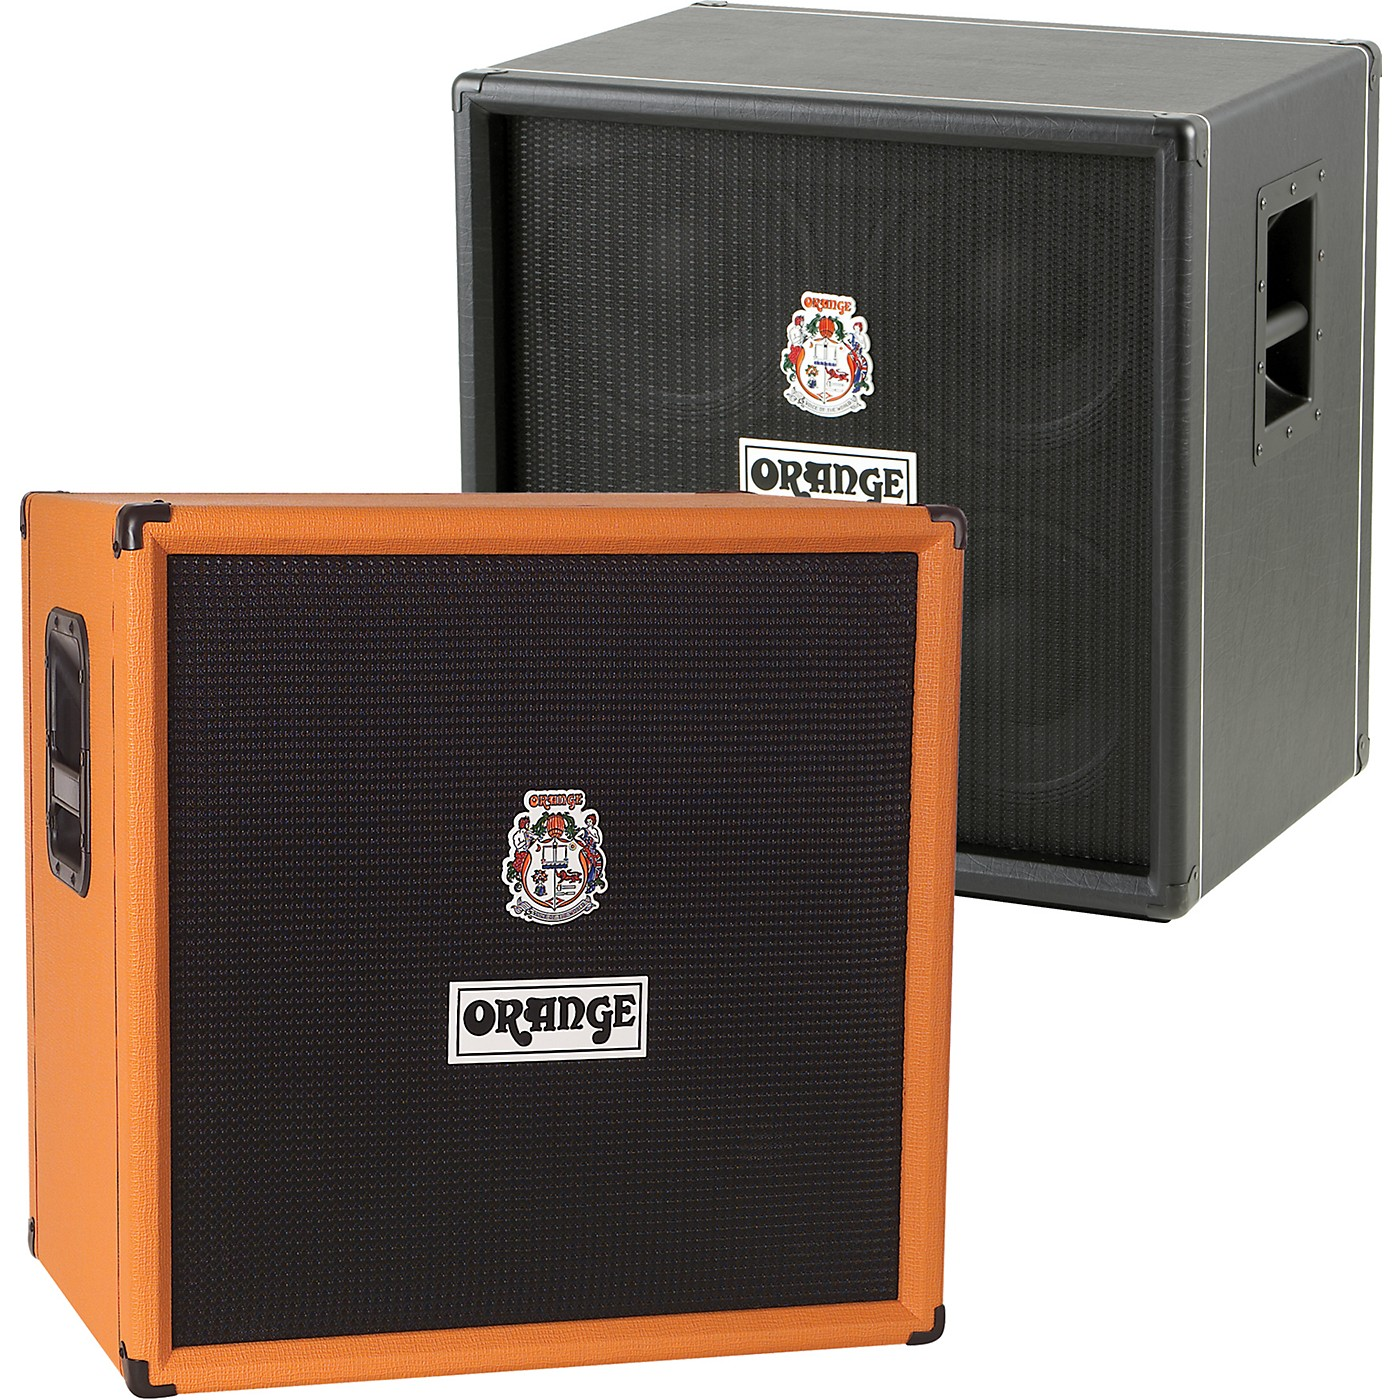 Orange Amplifiers OBC Series OBC410 600W 4x10 Bass Speaker Cabinet thumbnail